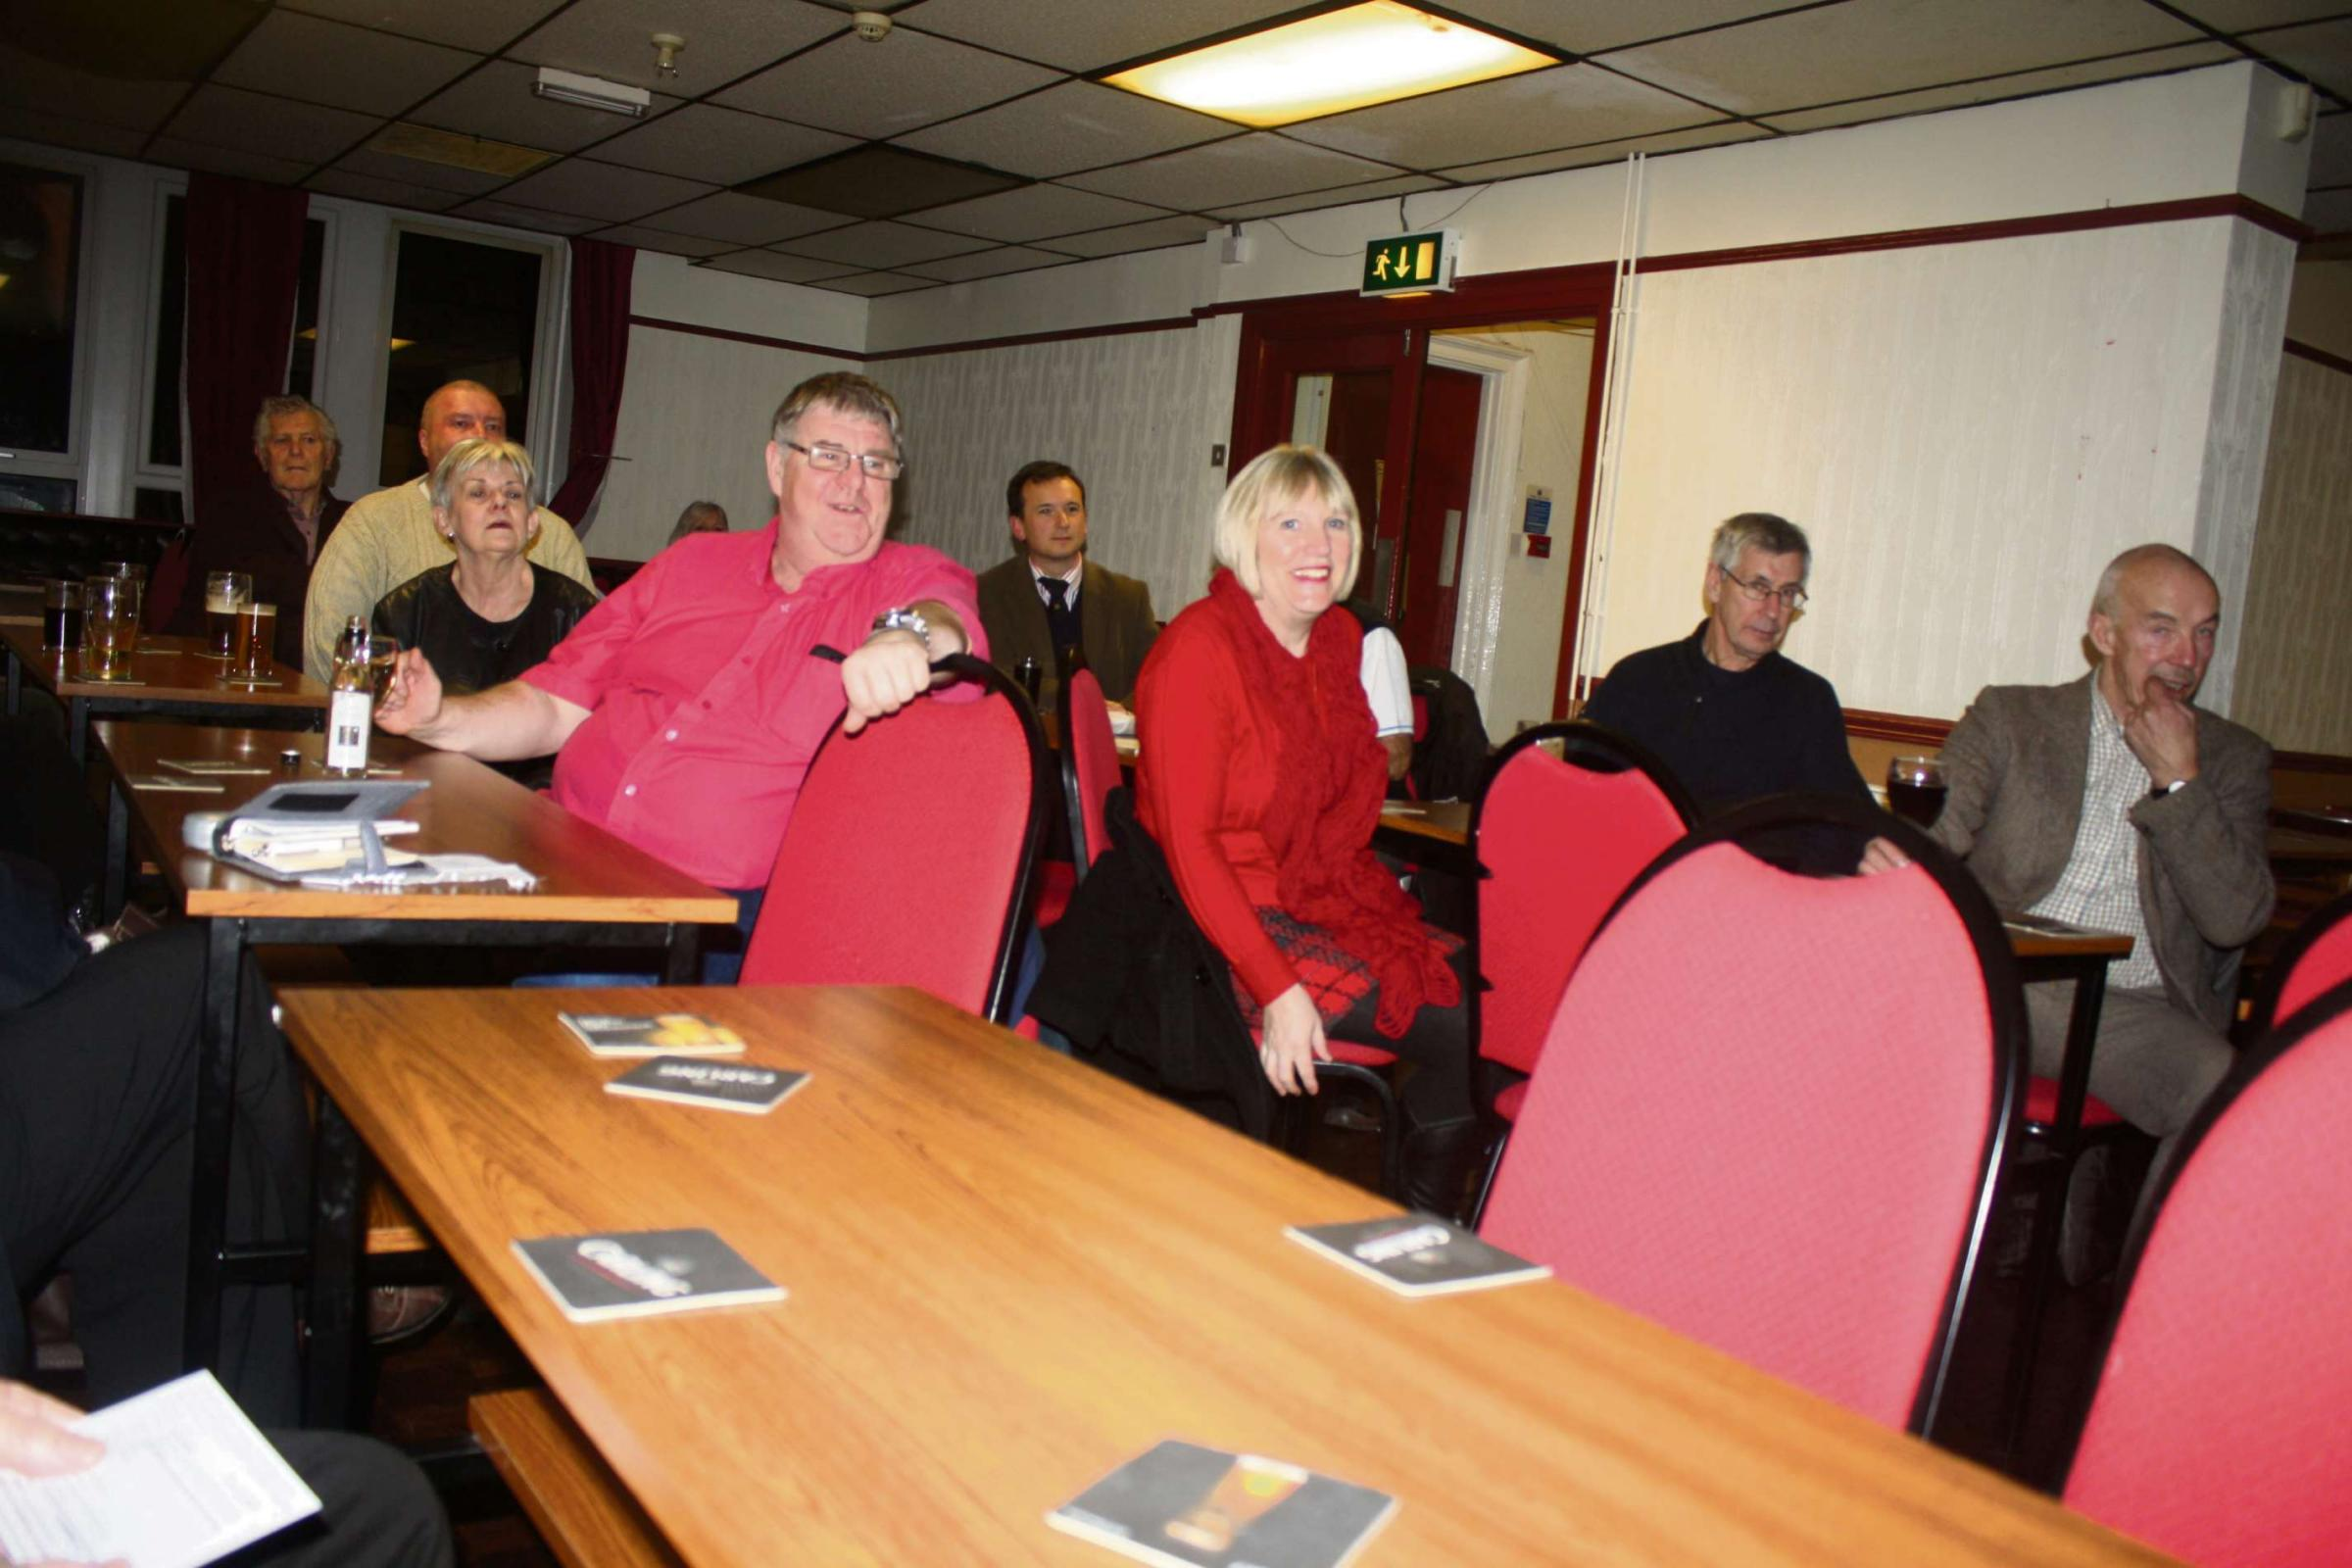 BUS FOCUS: Residents attending the FocusBARRY AGM gained an overview of Cardiff Bus services